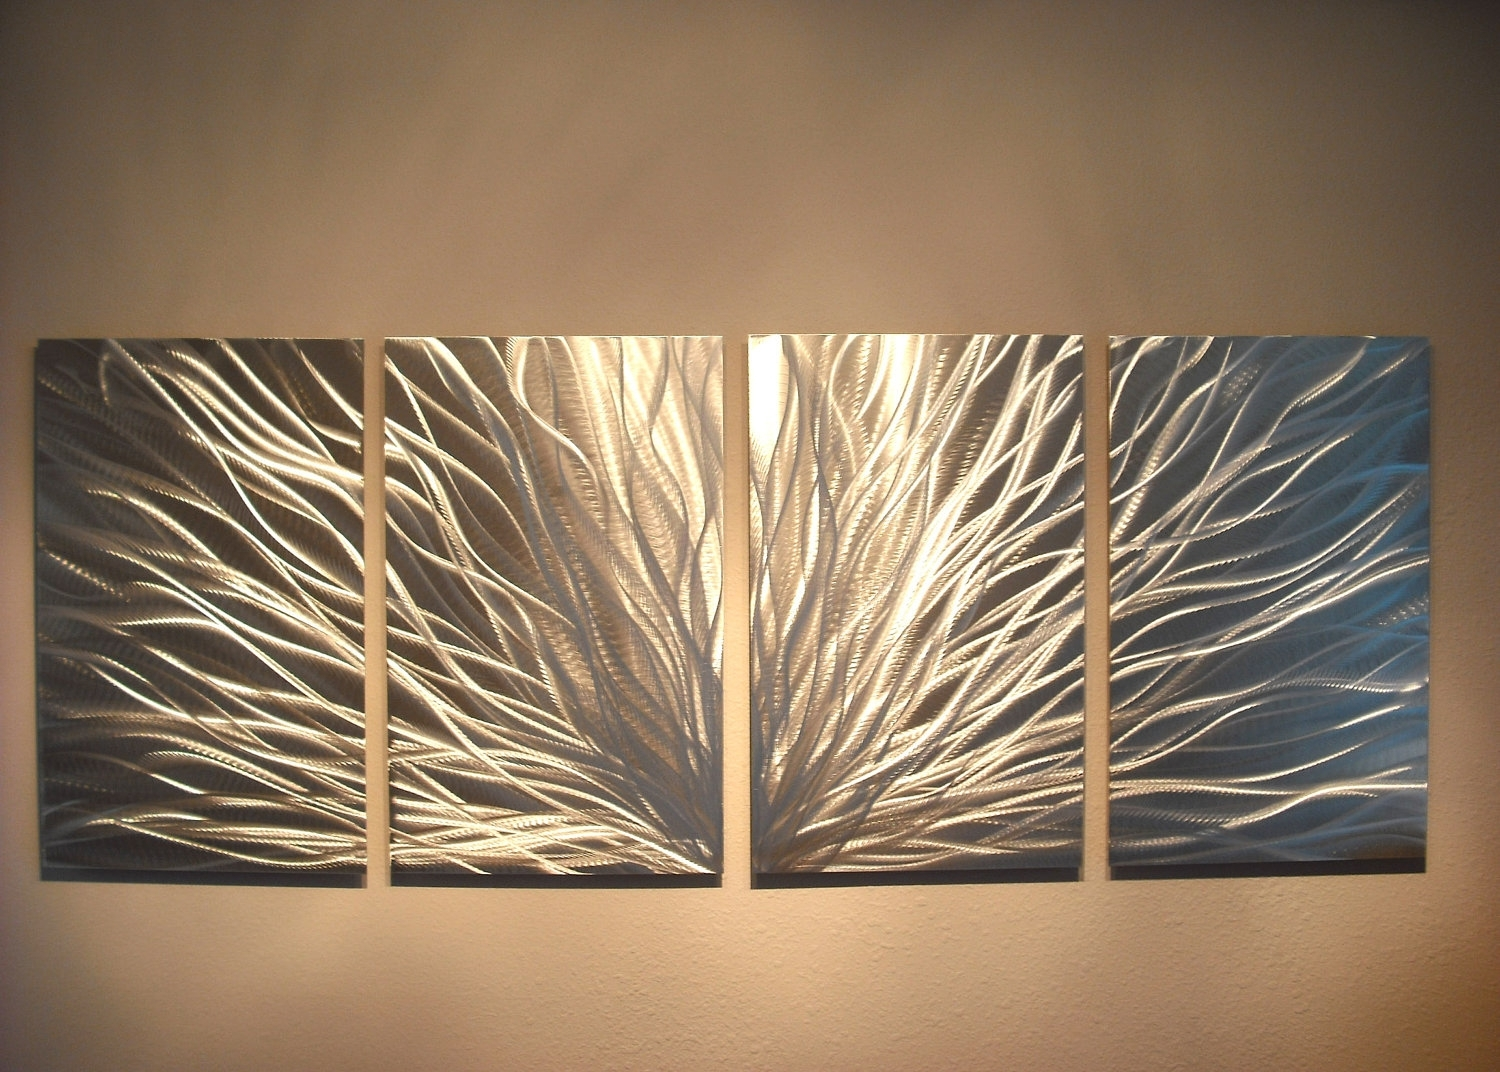 Radiance – Abstract Metal Wall Art Contemporary Modern Decor In Most Current Large Modern Fabric Wall Art (View 12 of 15)